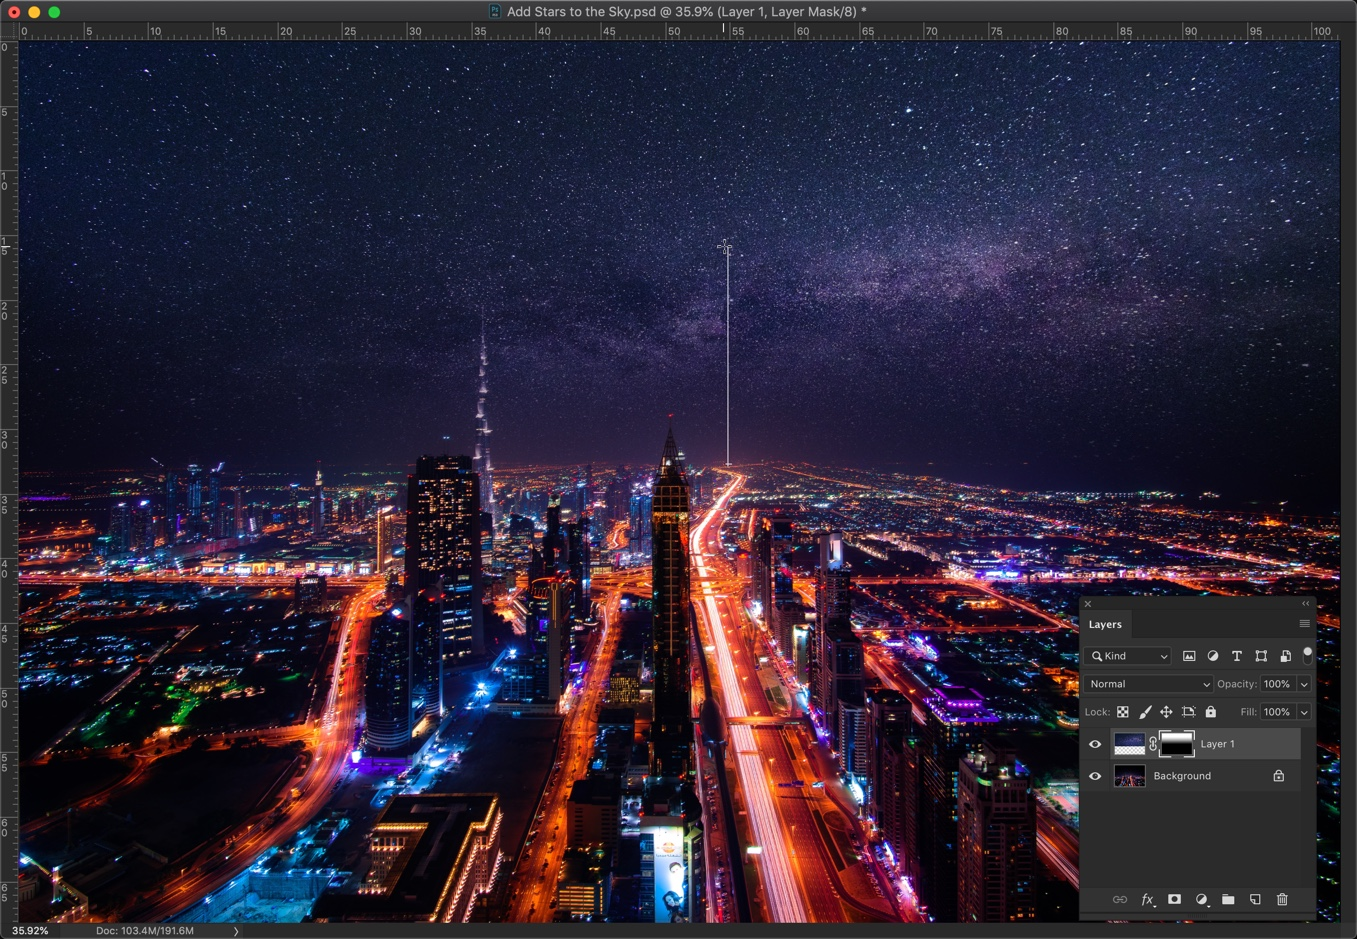 8-1 - How to add stars to the sky in Photoshop